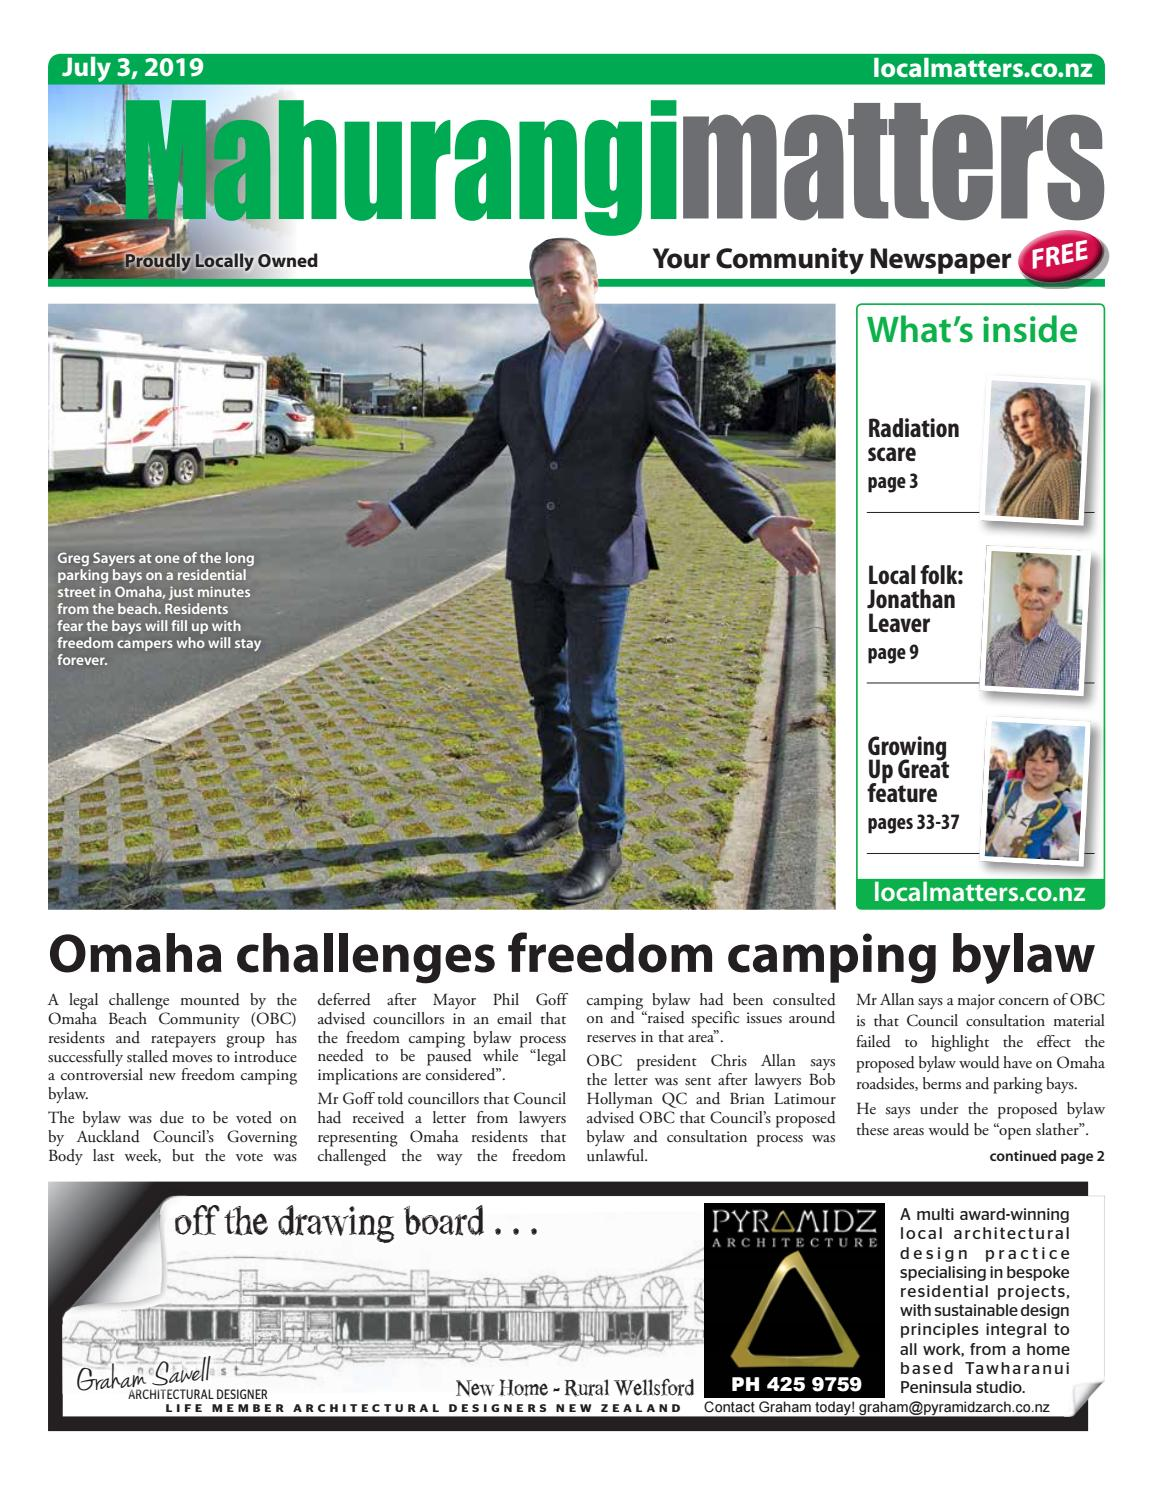 Mahurangi Matters 3 July 2019 by Localmatters - issuu